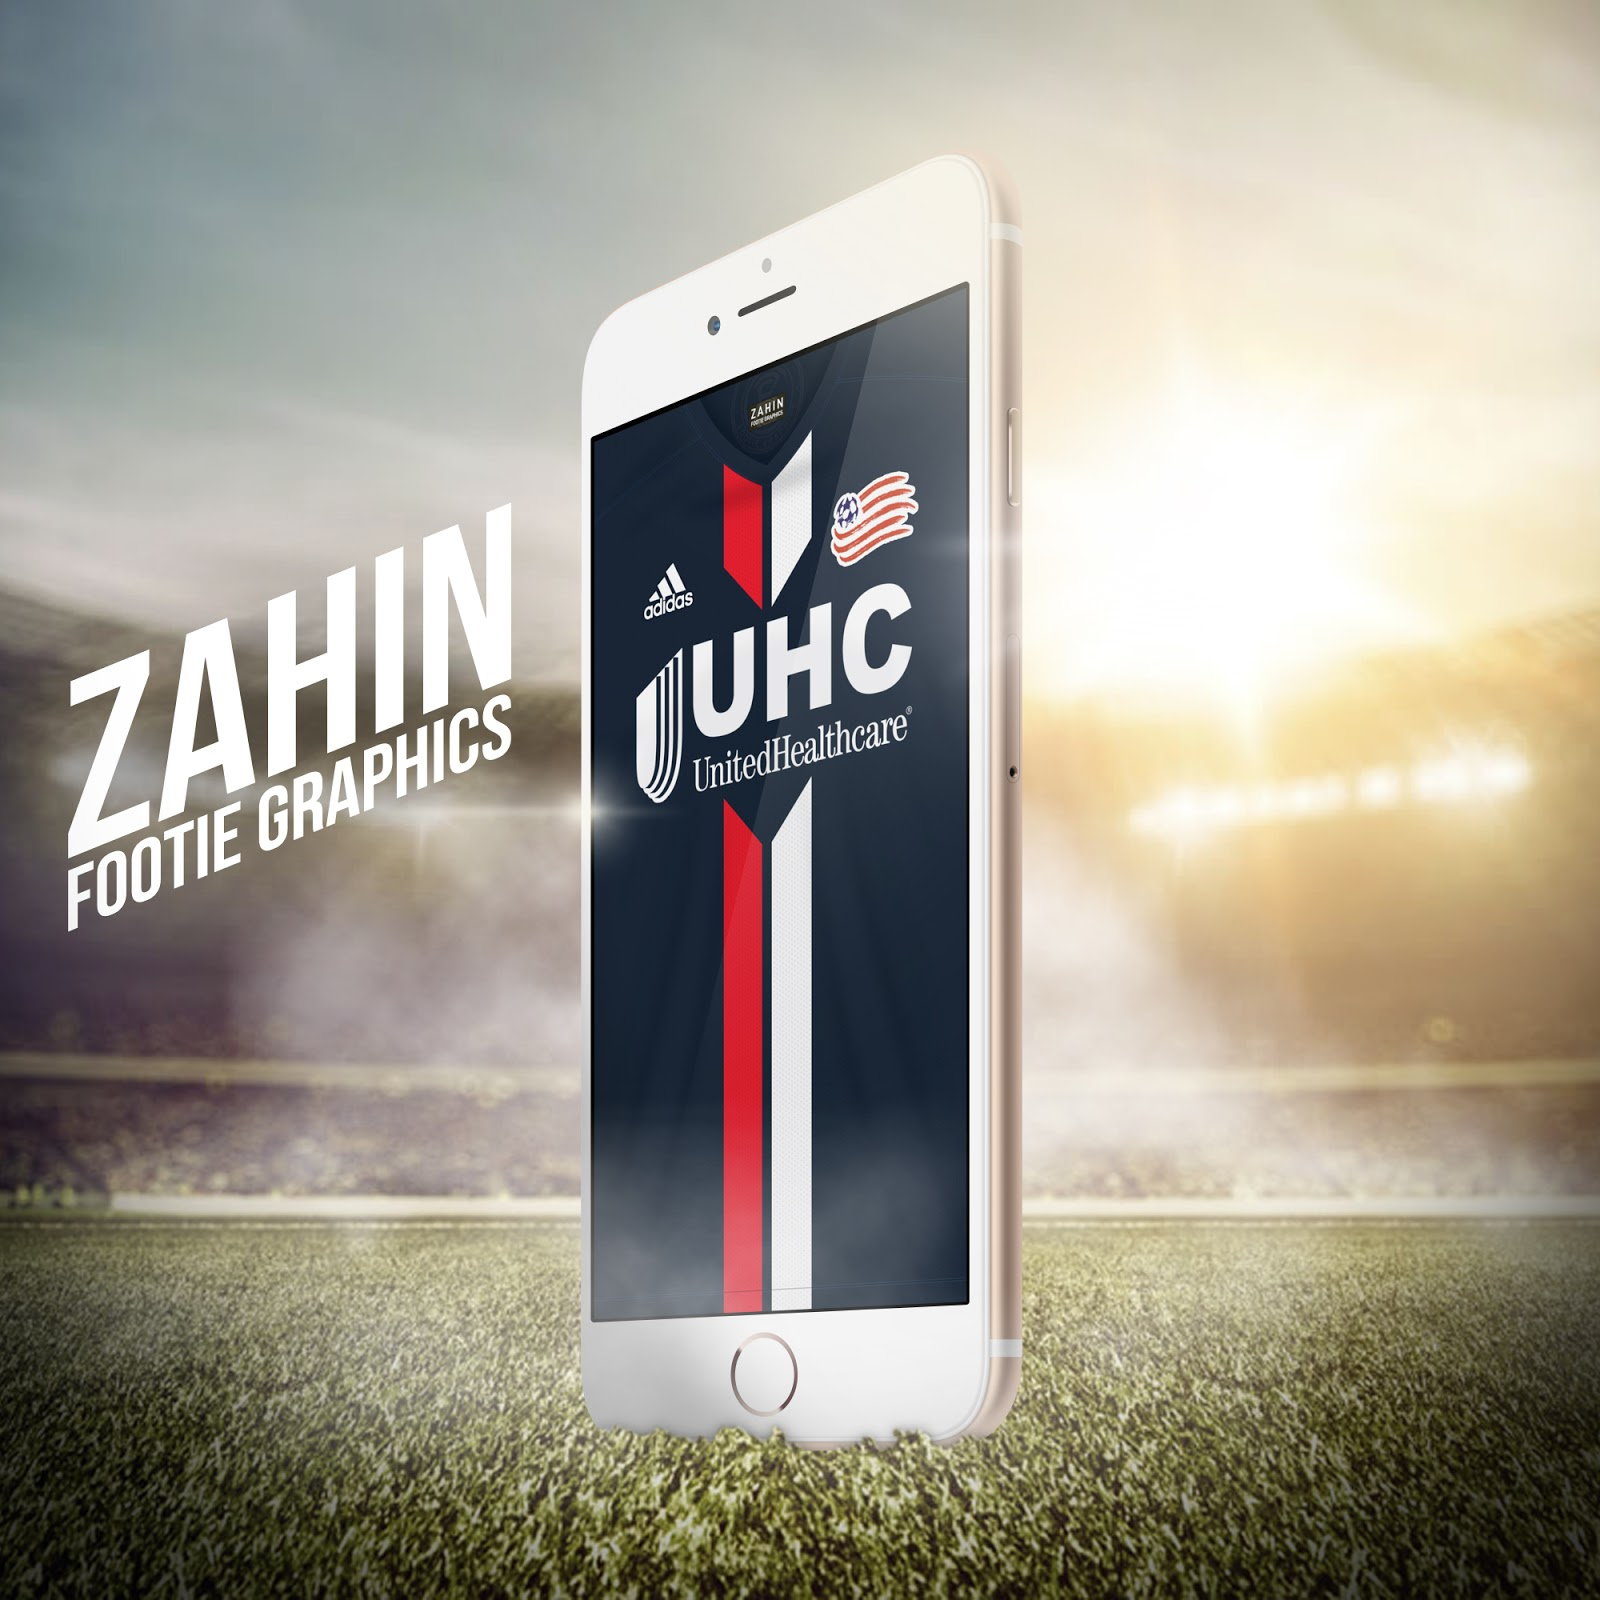 New england revolution 2016 zahin footie graphics new england revolution home 2016 wallpaper for your iphone android voltagebd Choice Image